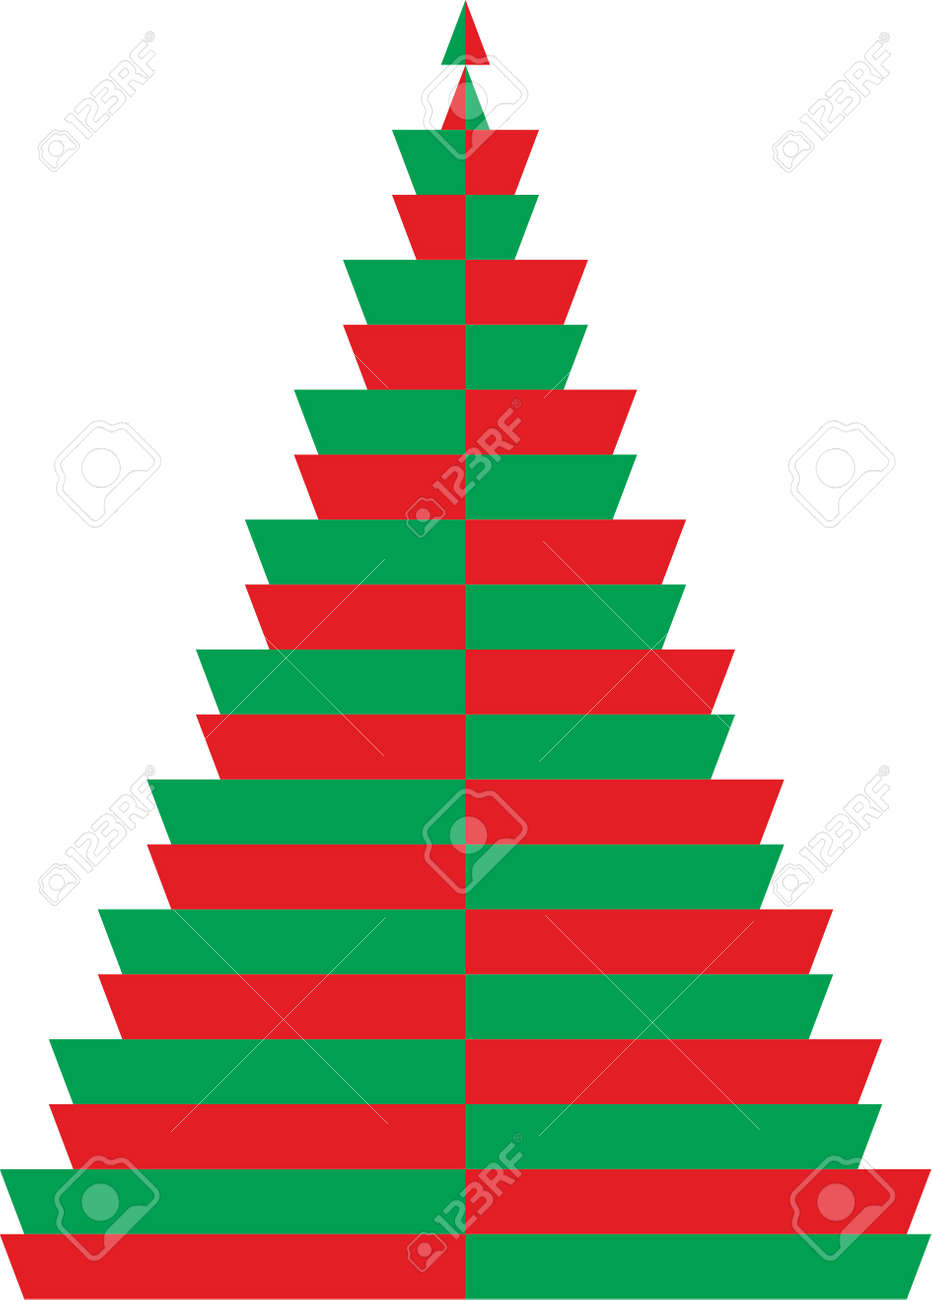 Easy Christmas Tree In Green And Red Color Royalty Free Cliparts ...